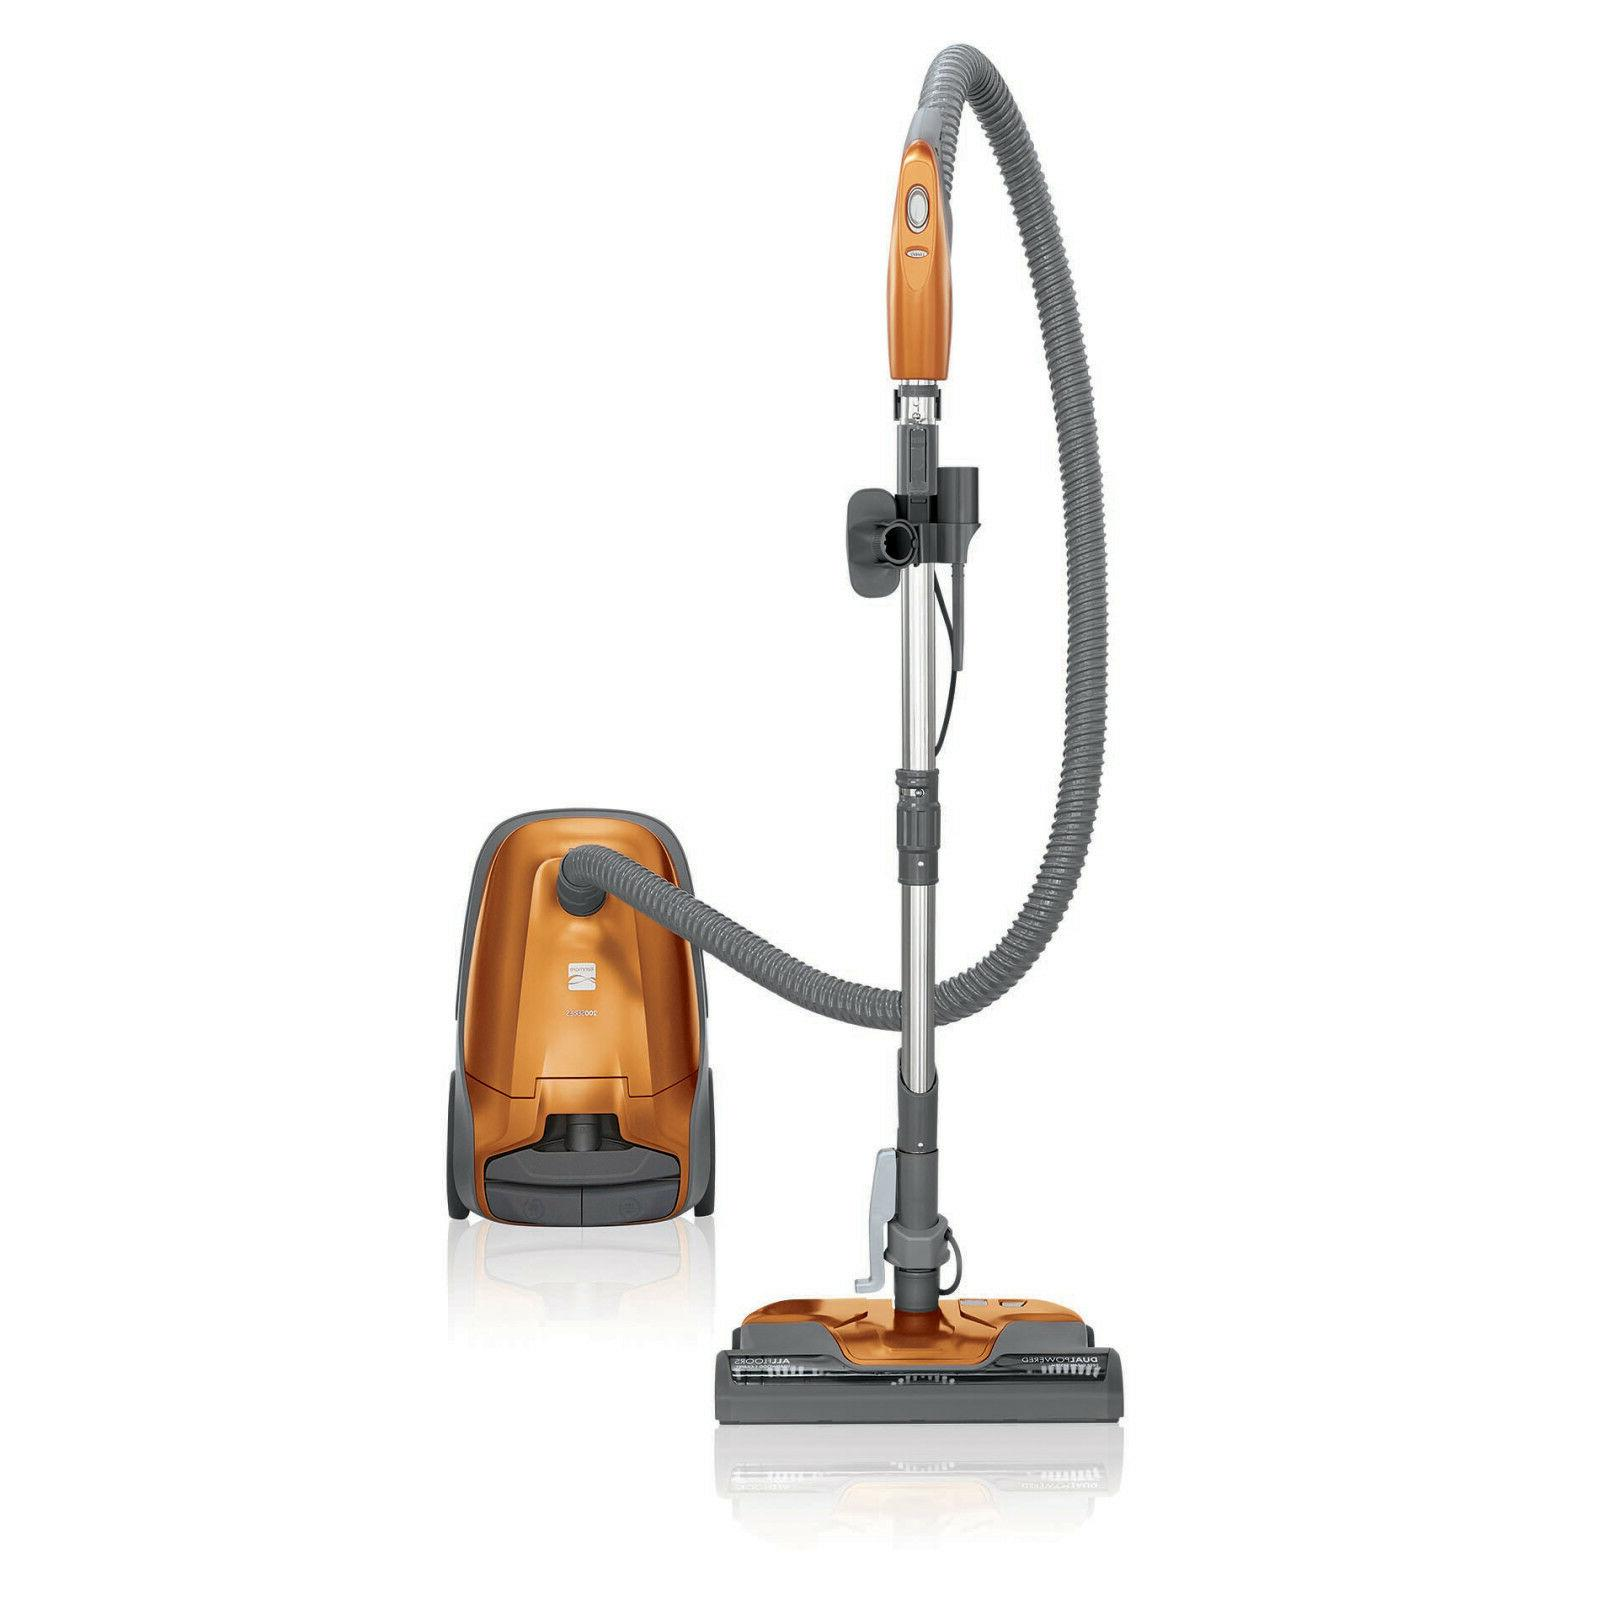 Cleaner 81214 Orange New Shipping